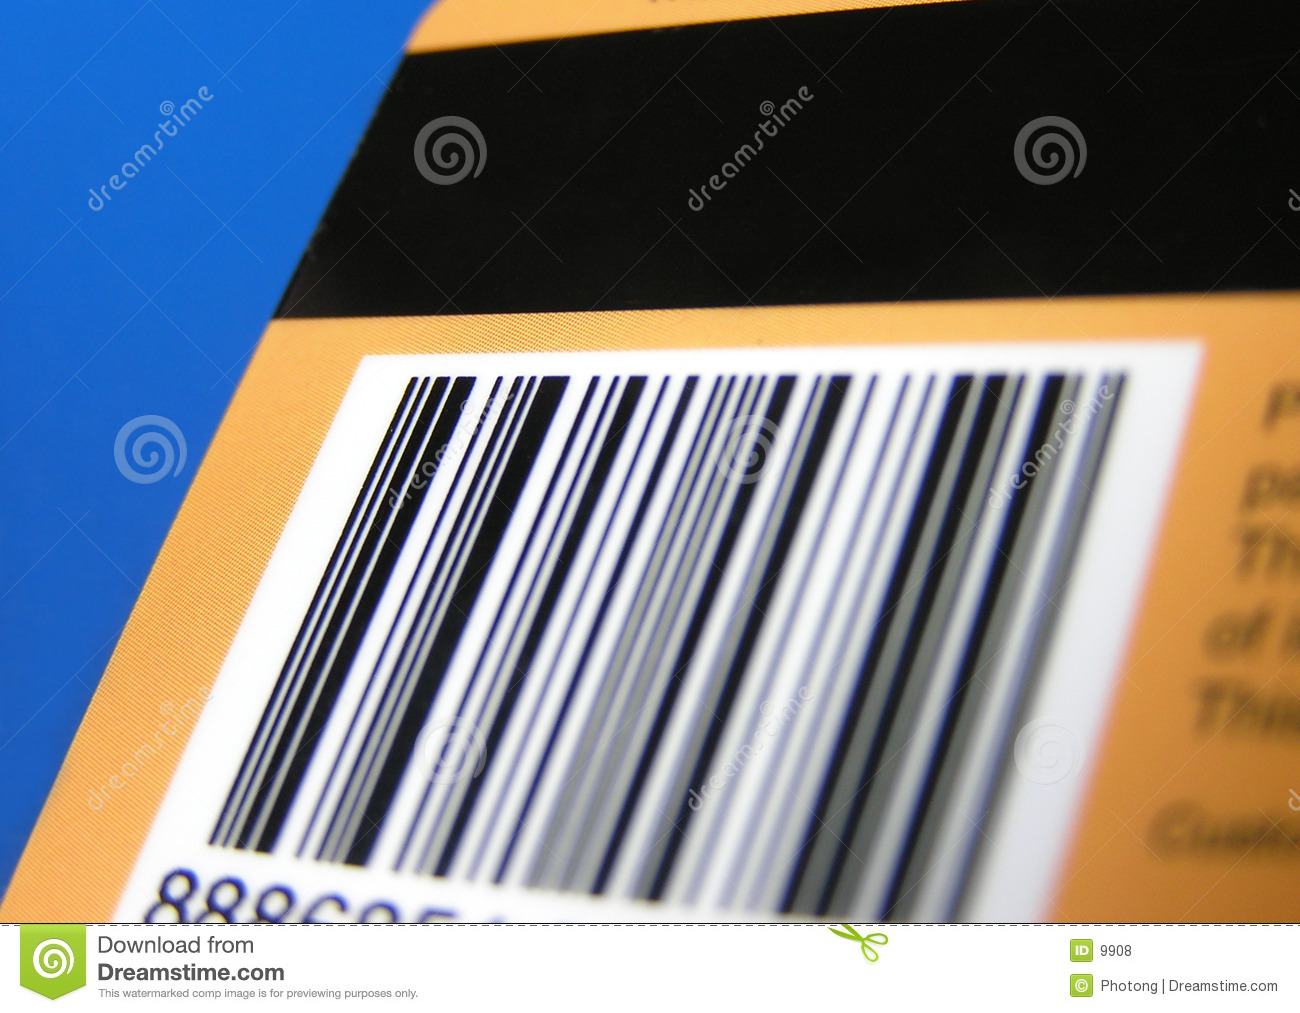 Card with barcode and stripe